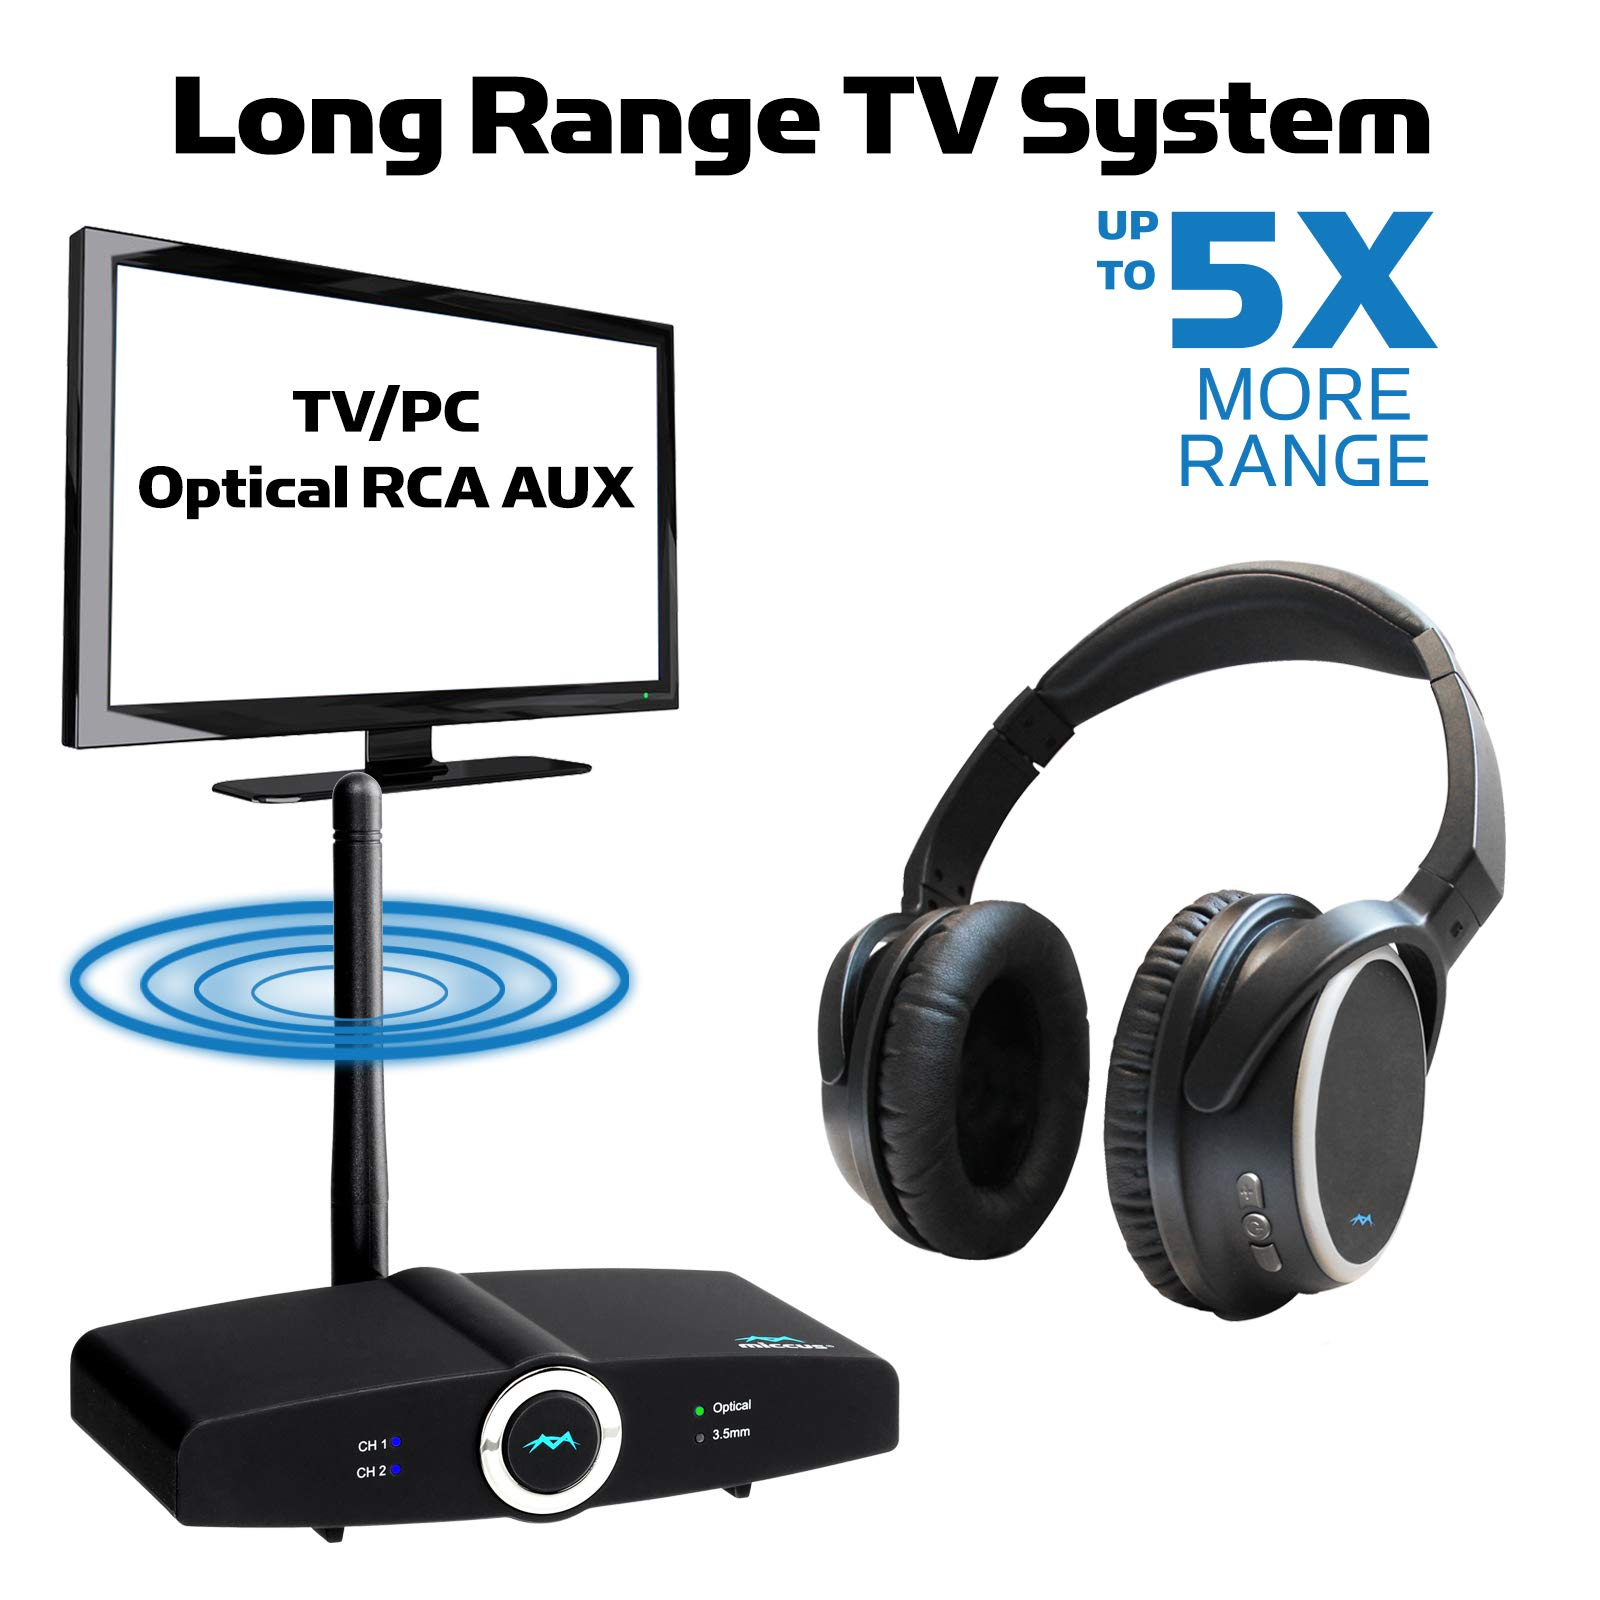 Wireless TV Headphones with TV Bluetooth Transmitter System, Listen in HD, No Audio Delay, Over Ear Headset Ready to Use, Paired for Free, 160 Foot Range, Mic (Digital Optical AUX RCA 3.5mm) Miccus